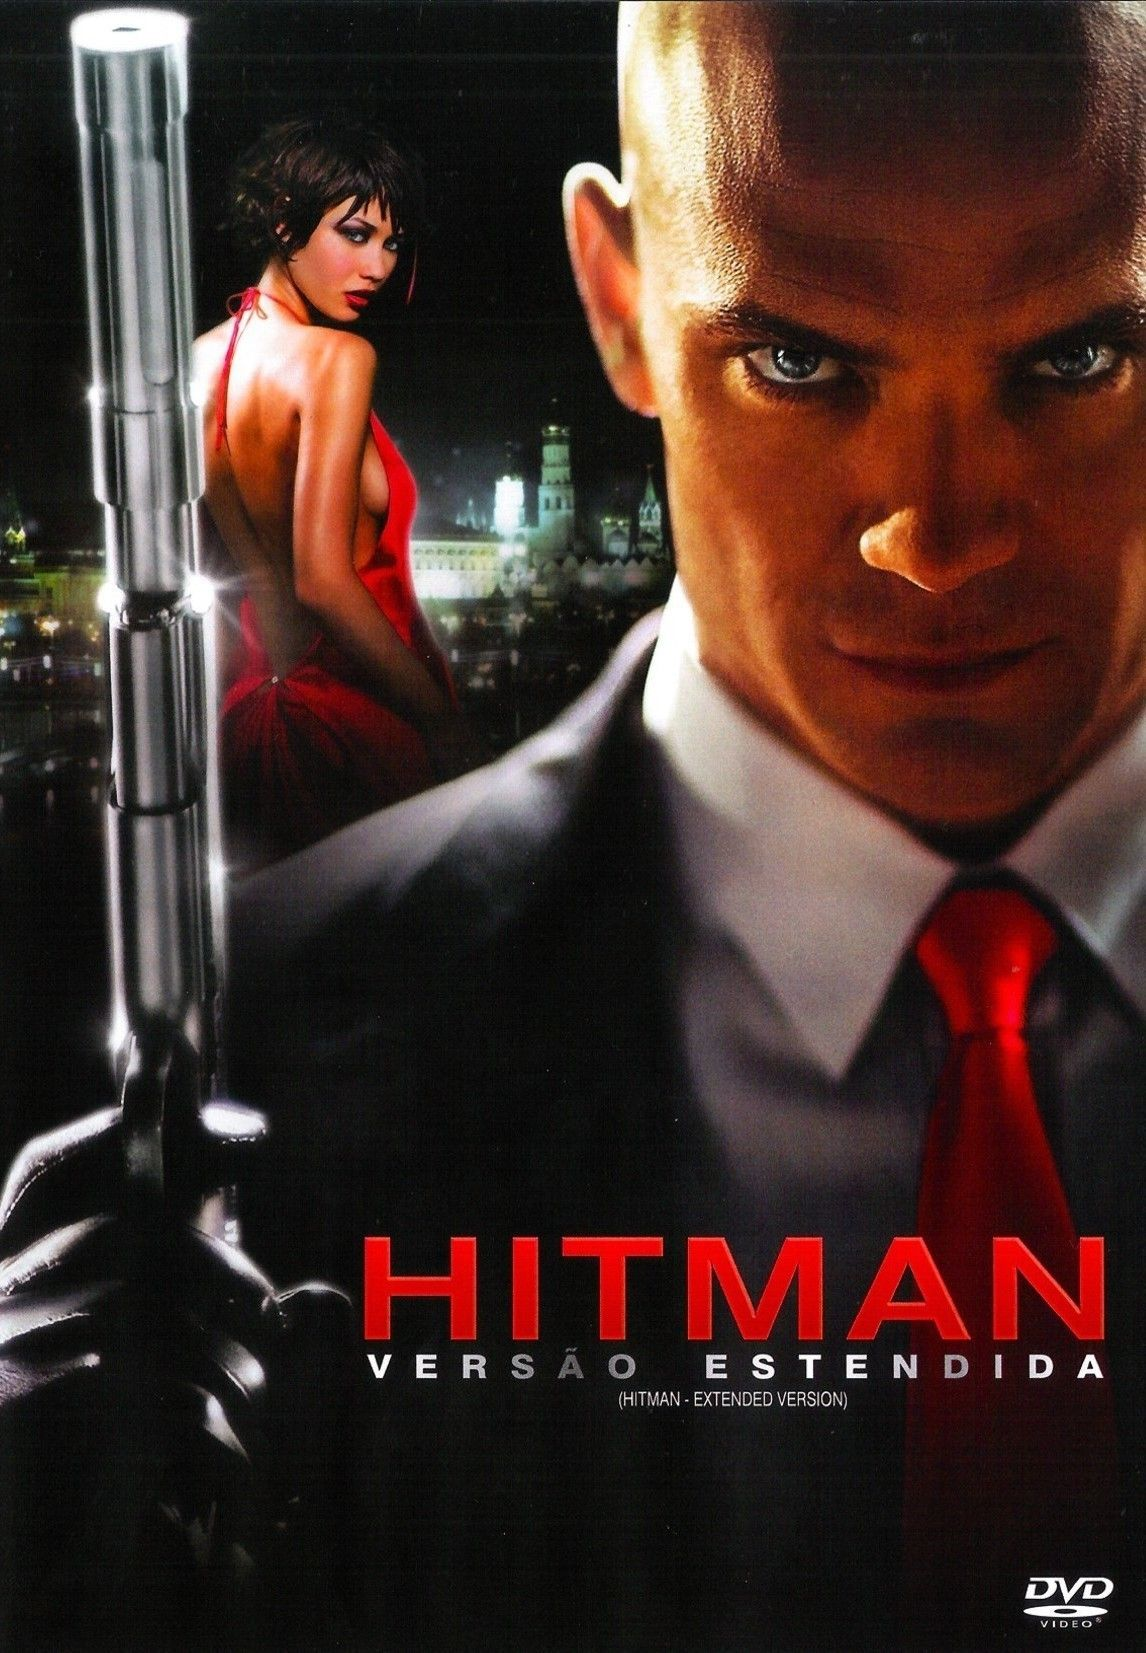 Hitman Agente 47 With Images Hitman Movie Streaming Movies